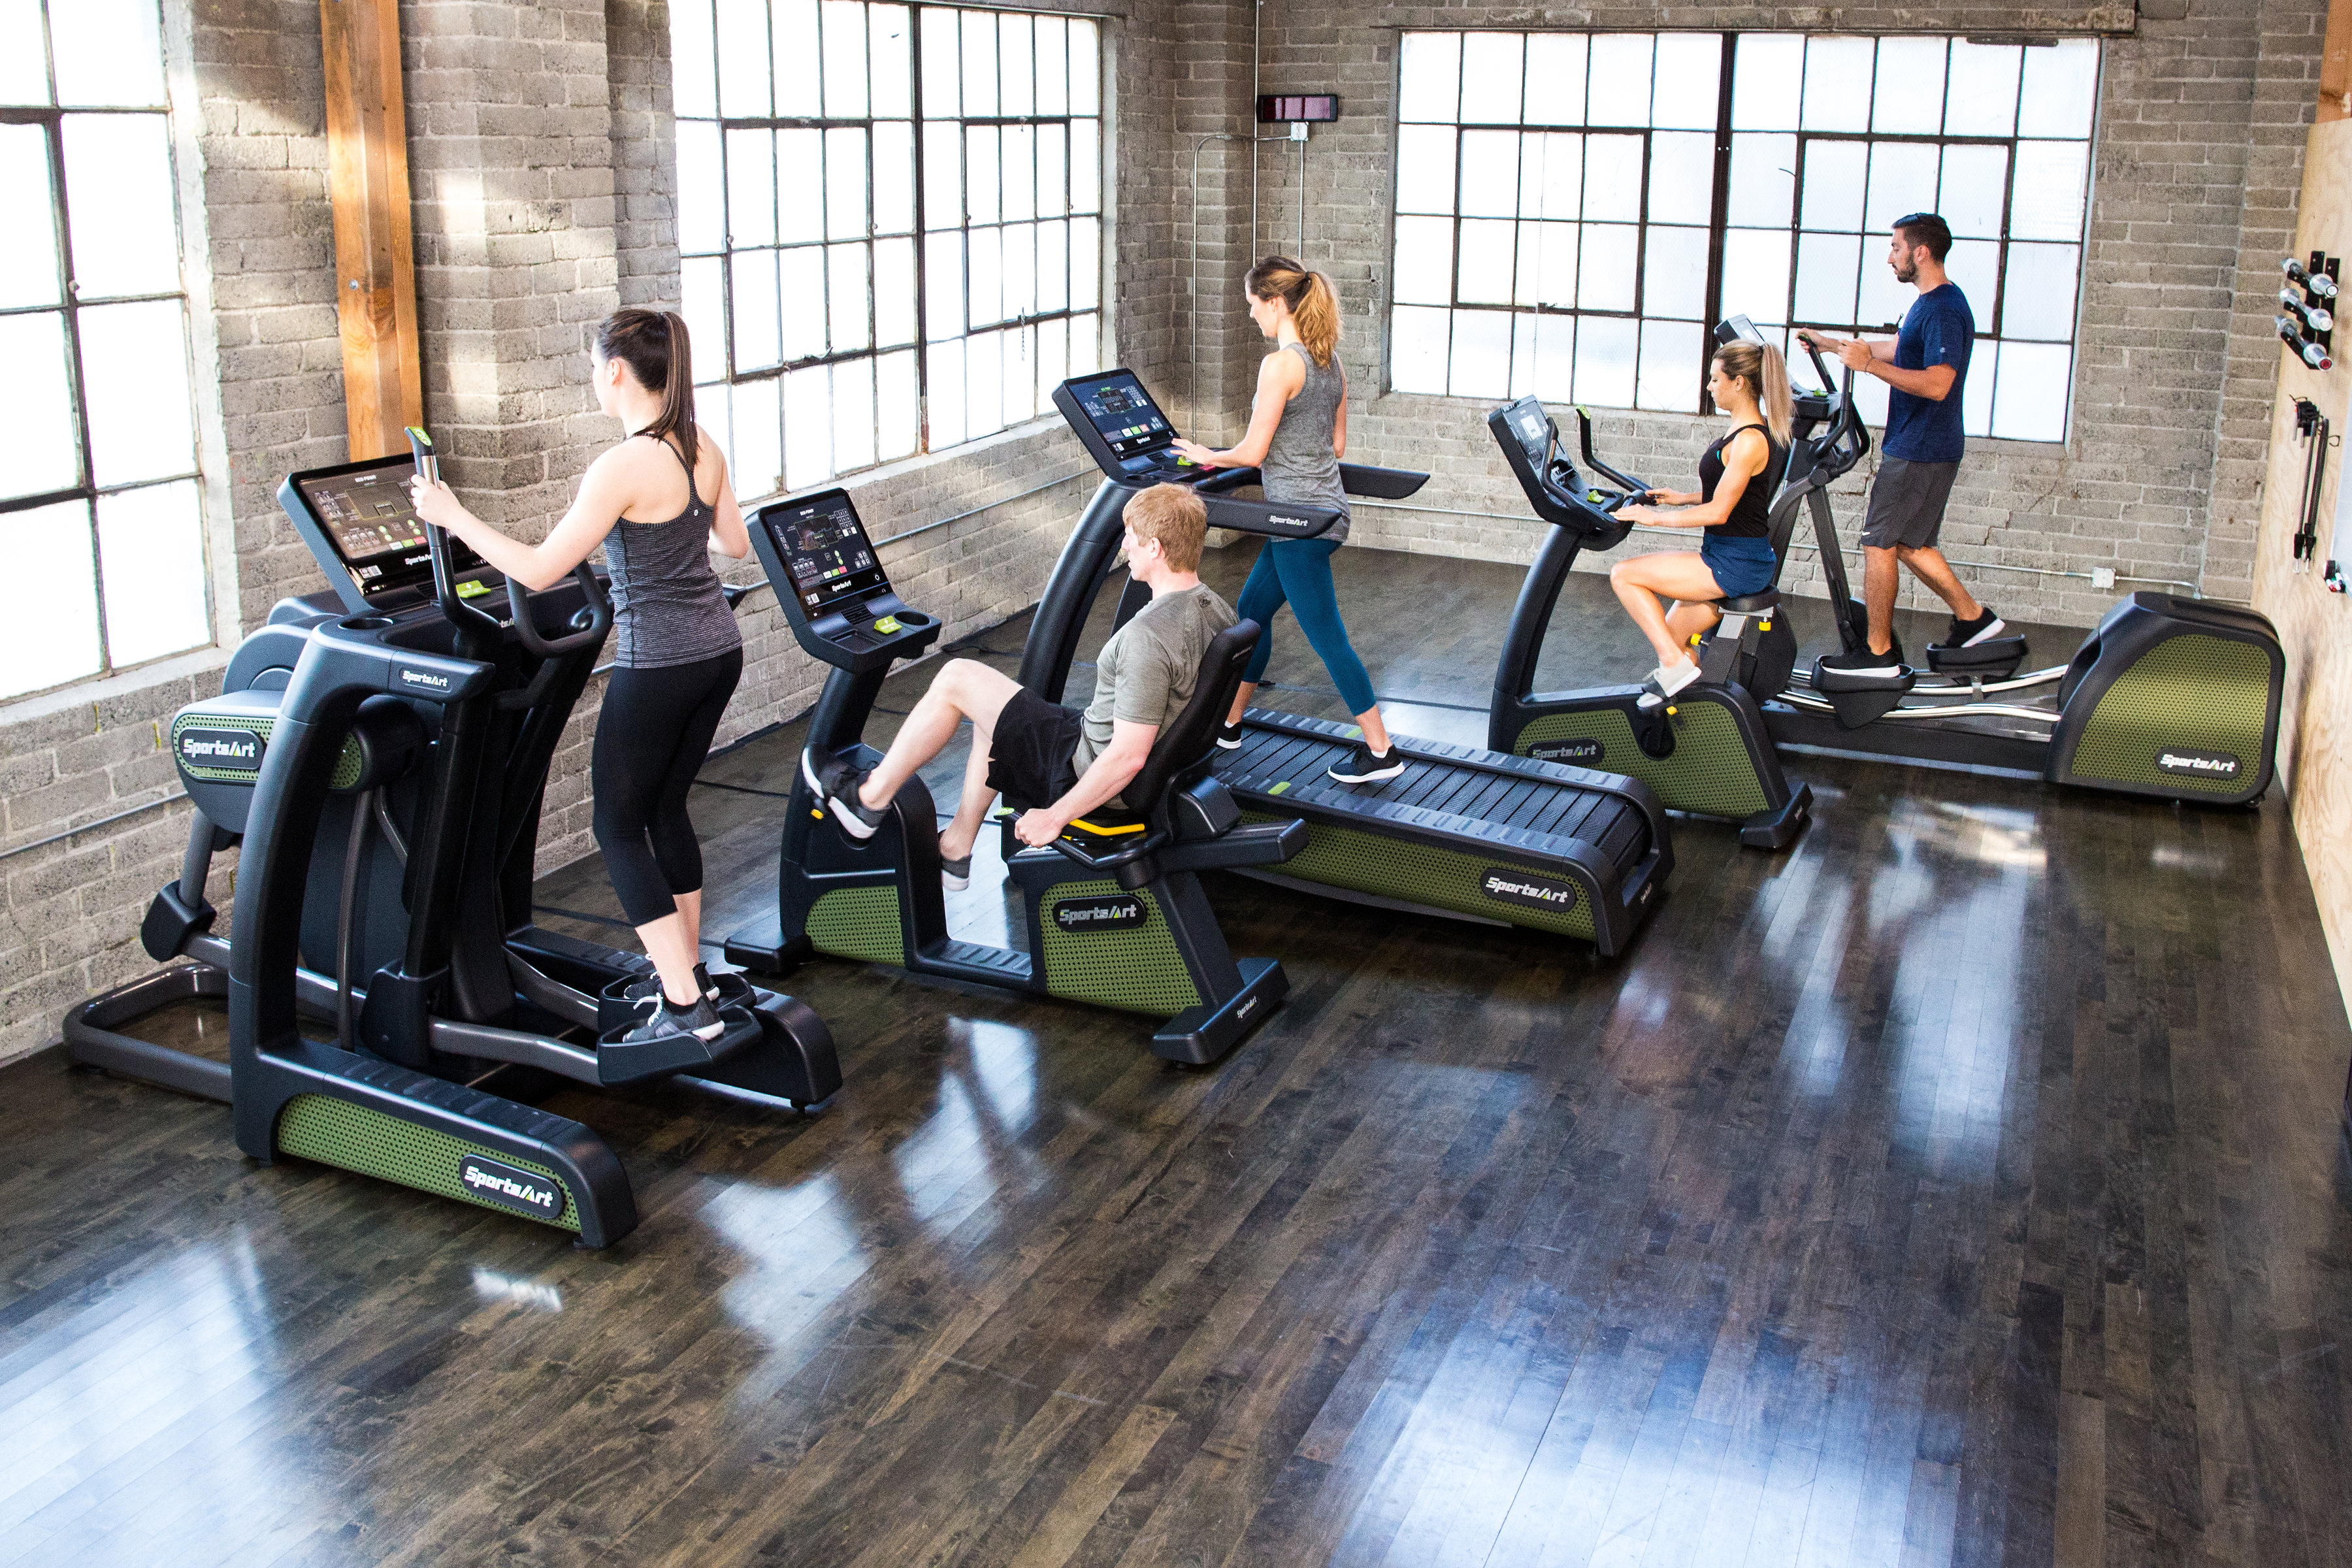 Electricity generating gym equipment